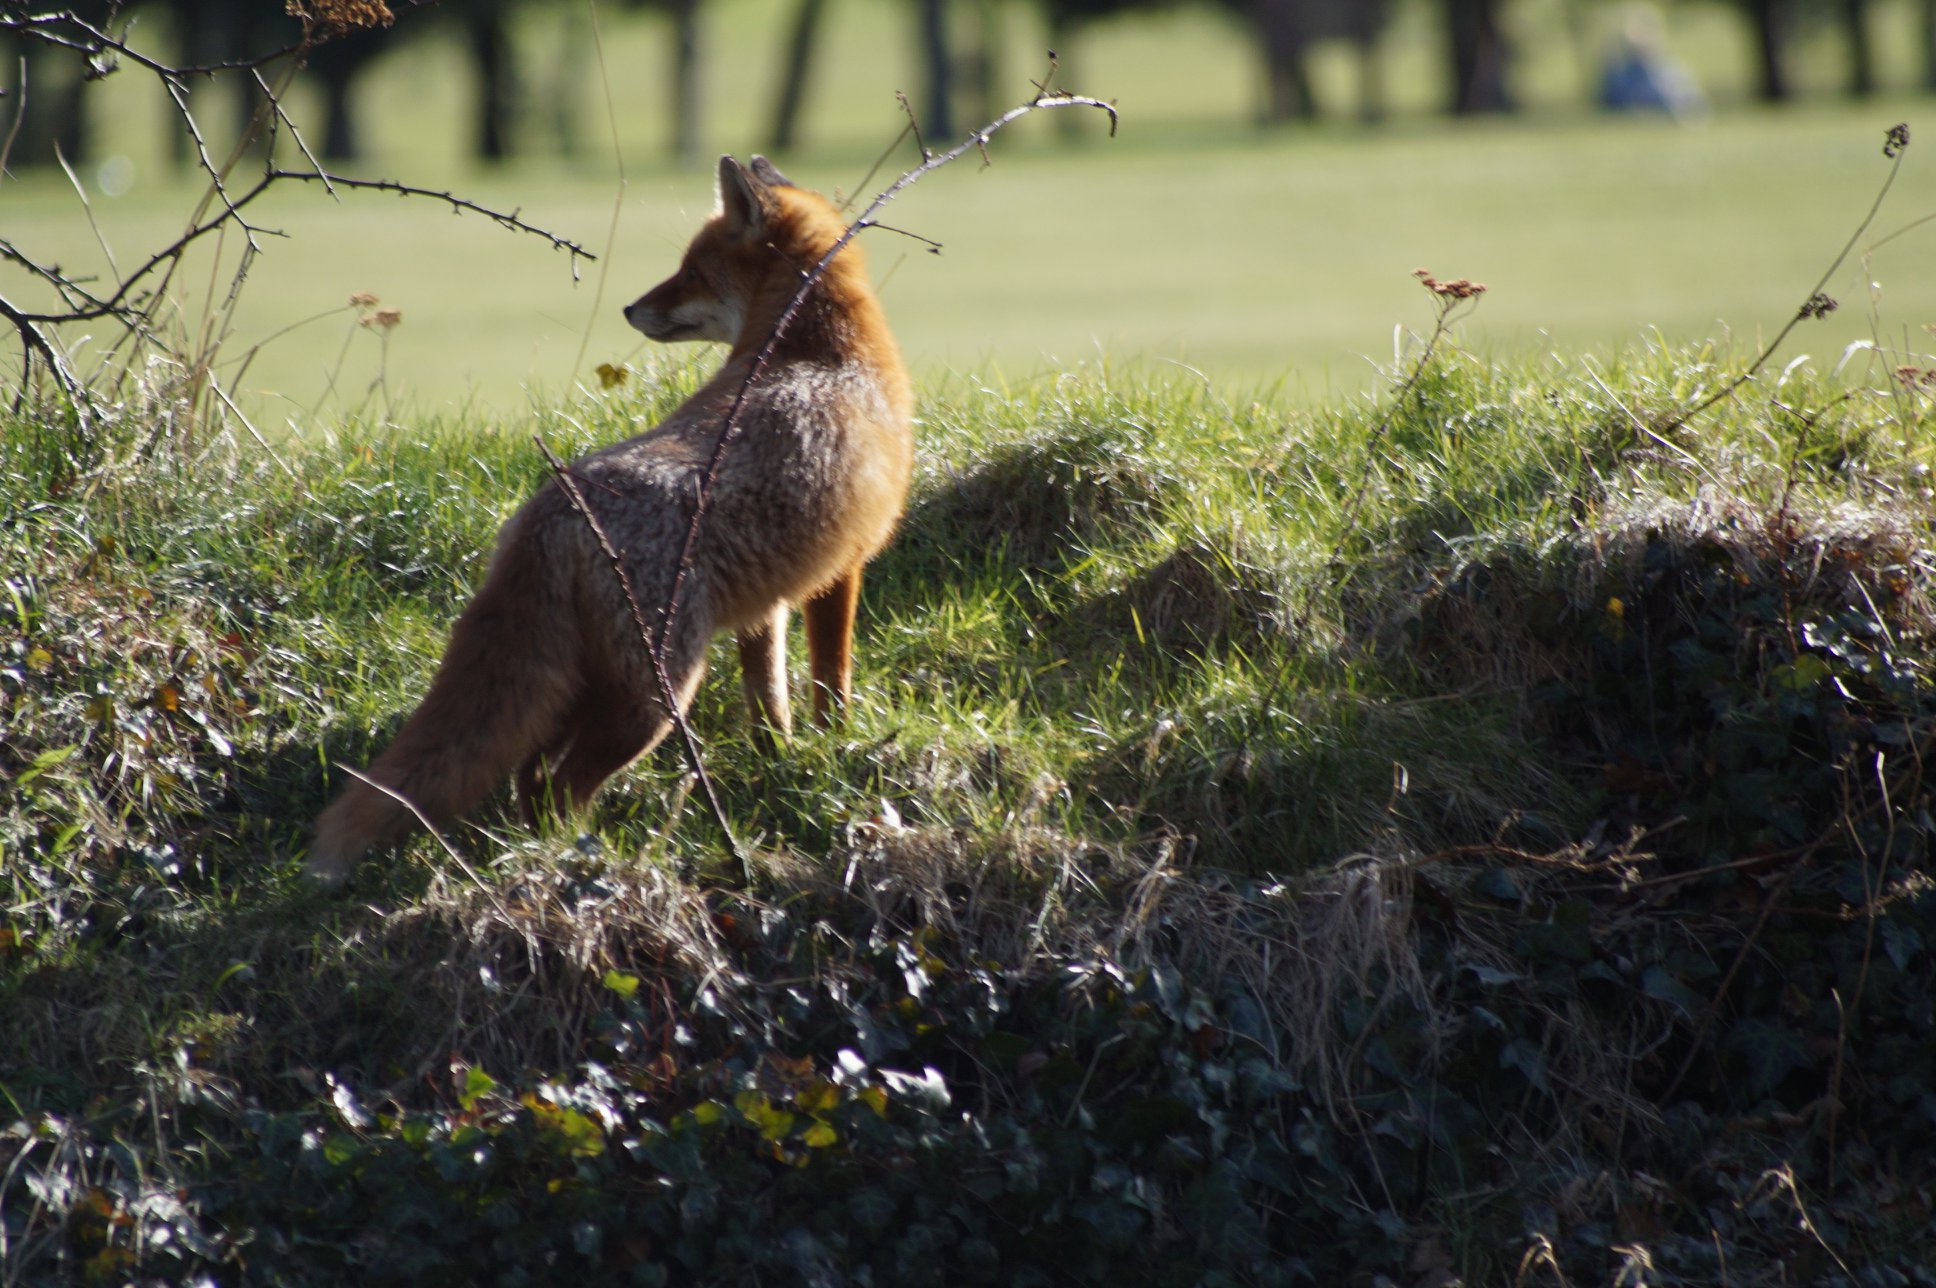 Jim Nisbet captured this fox on the banks of the River Esk